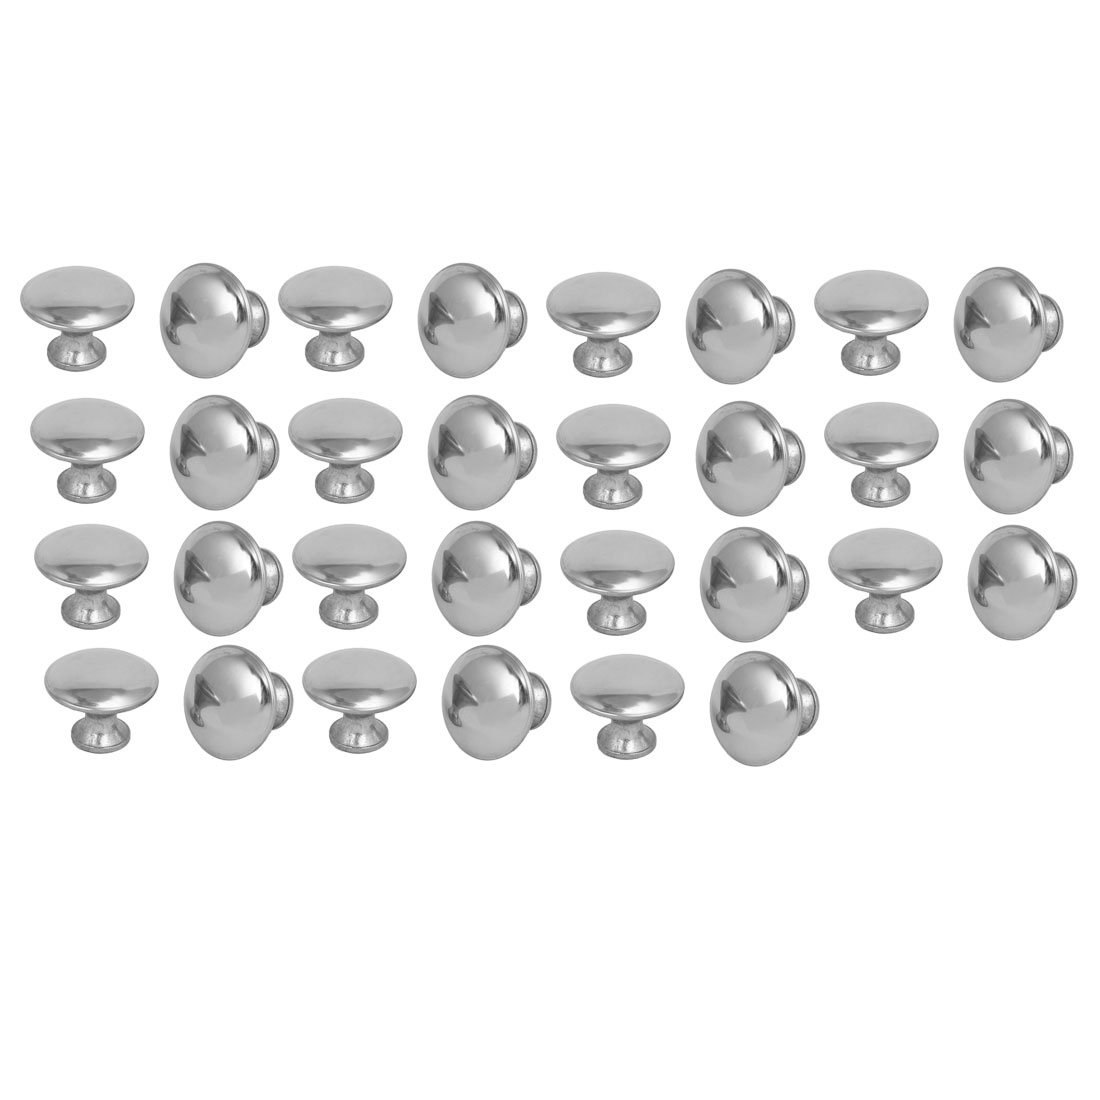 Cupboard Cabinet Drawer Single Hole Round Pull Knobs Silver Tone 30mmx23mm 30pcs